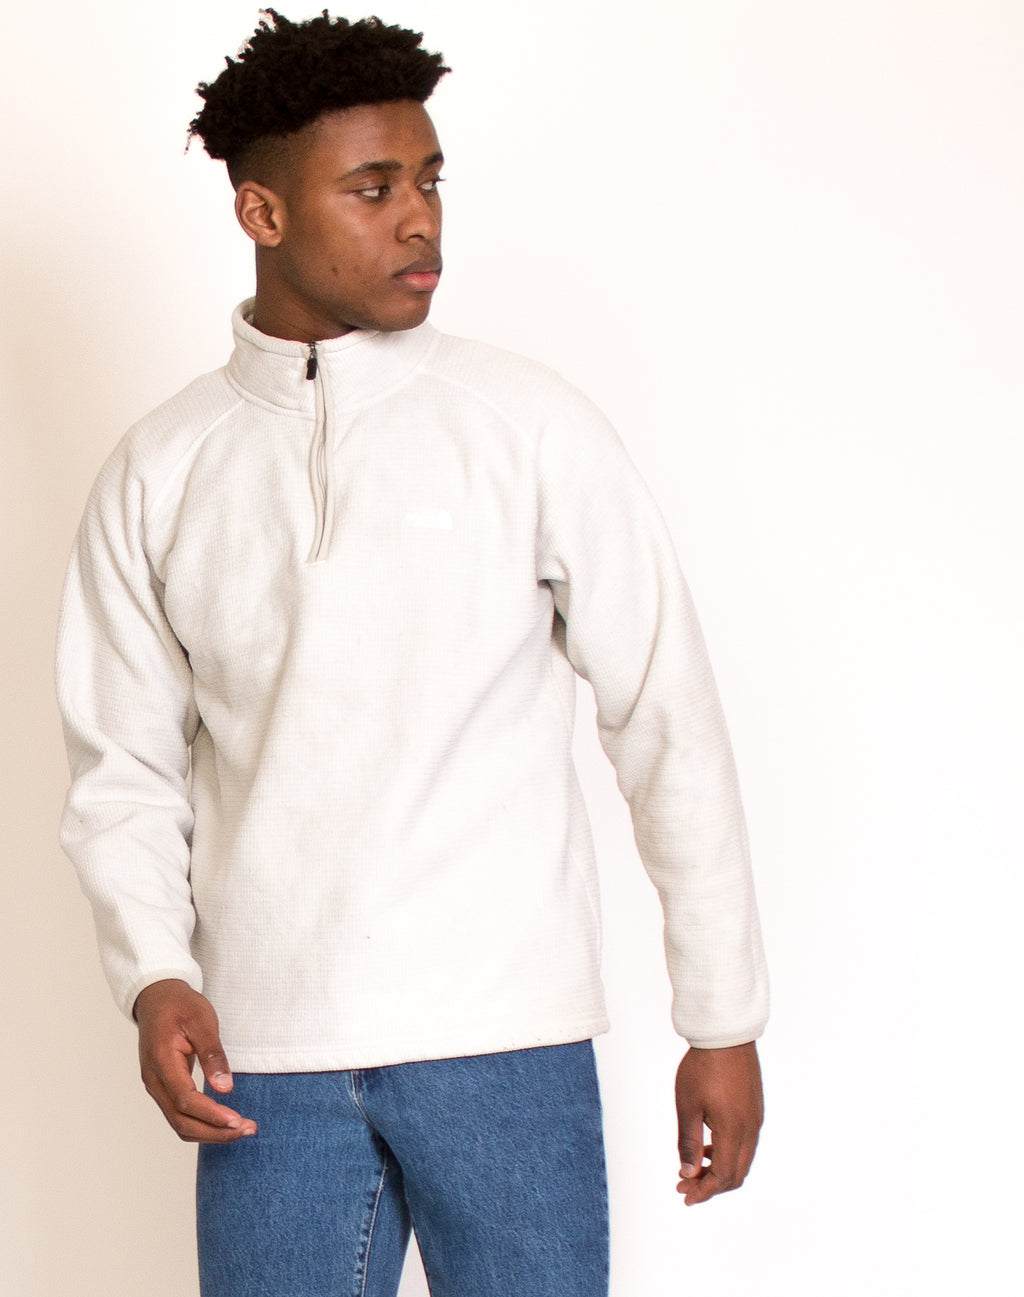 NORTH FACE OFF WHITE WAFFLE FLEECE